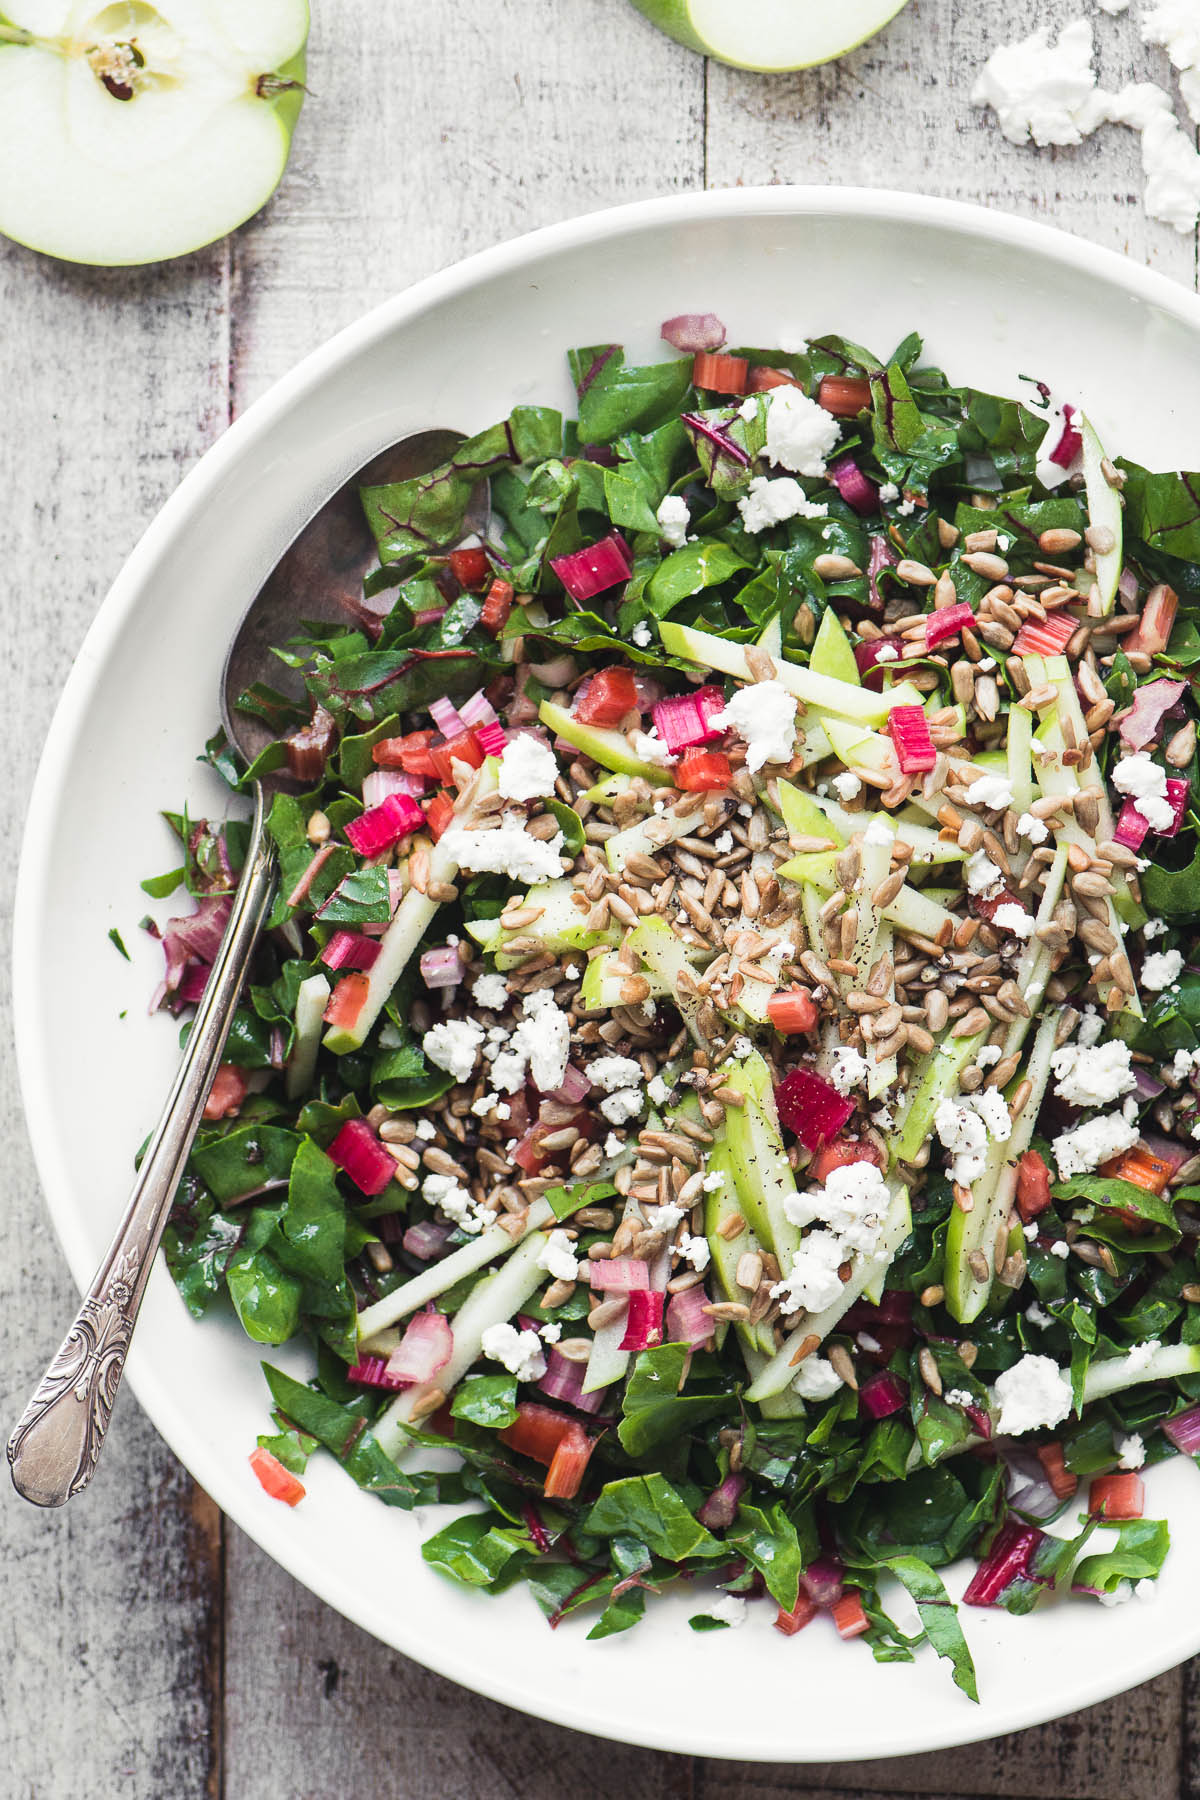 Raw rainbow chard salad